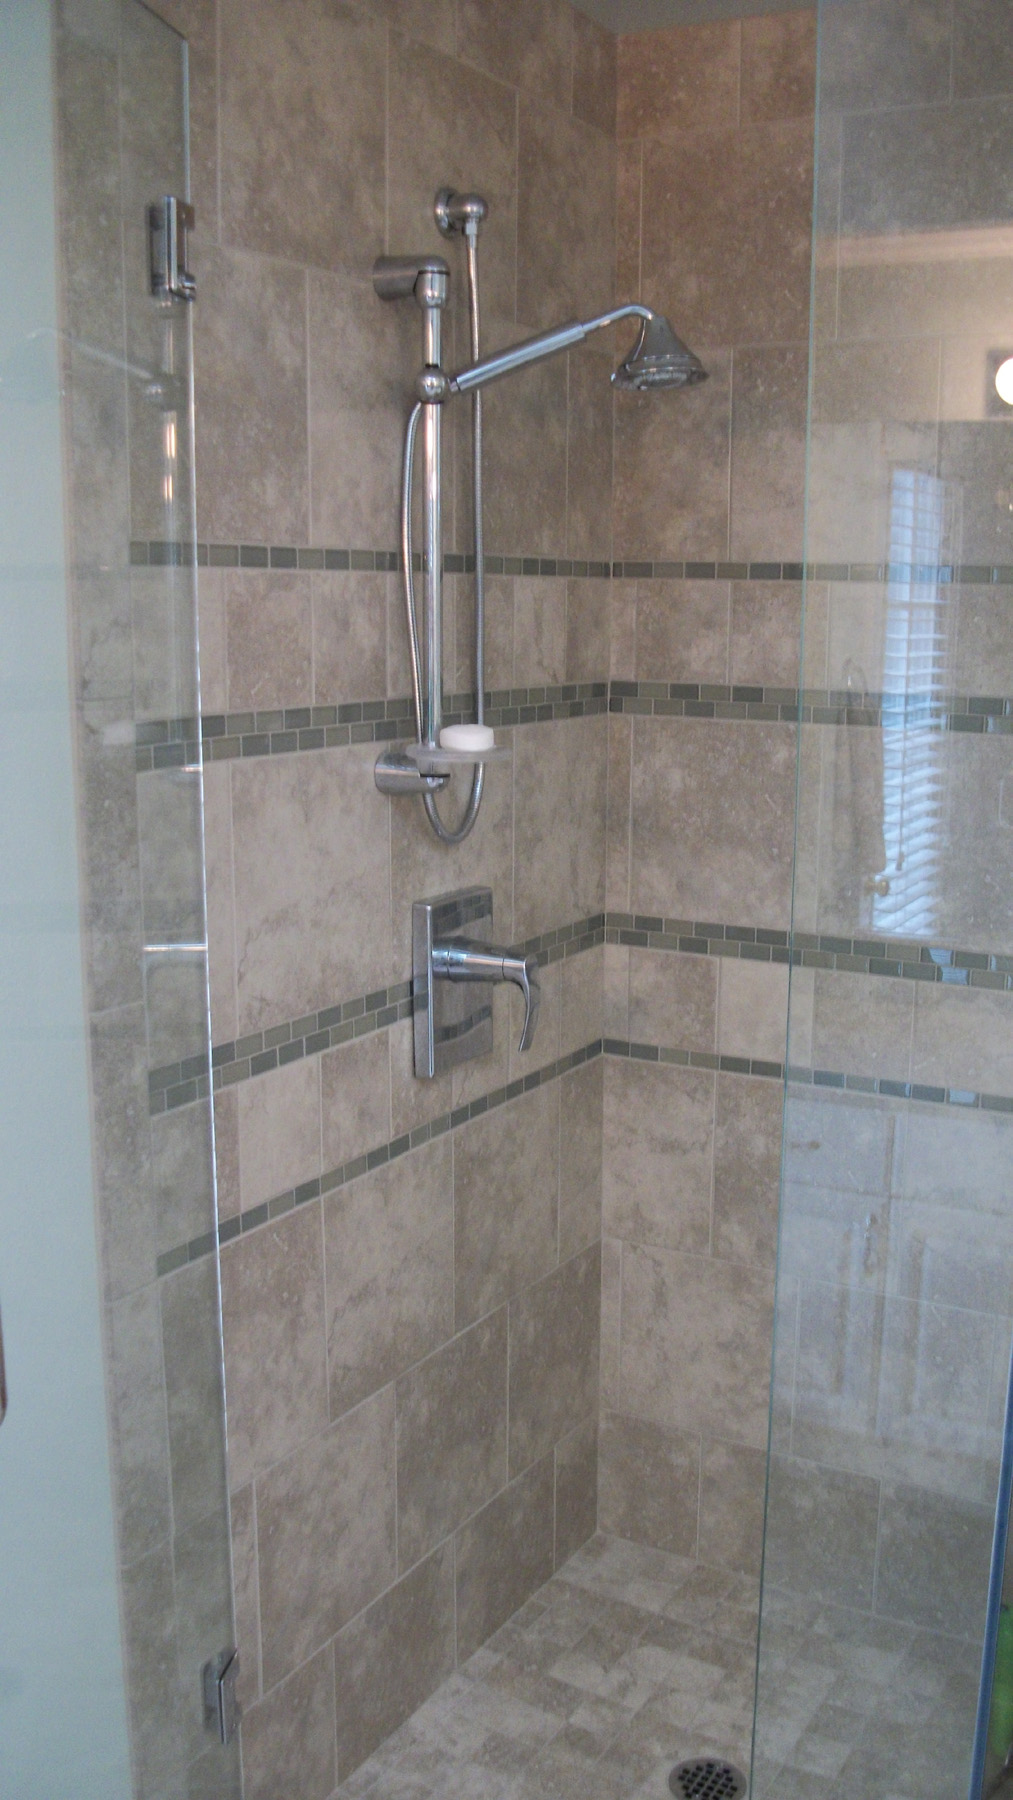 Shower Floor Tiles Which Why And How: Bath Remodel Featuring Schon Free Standing Tub